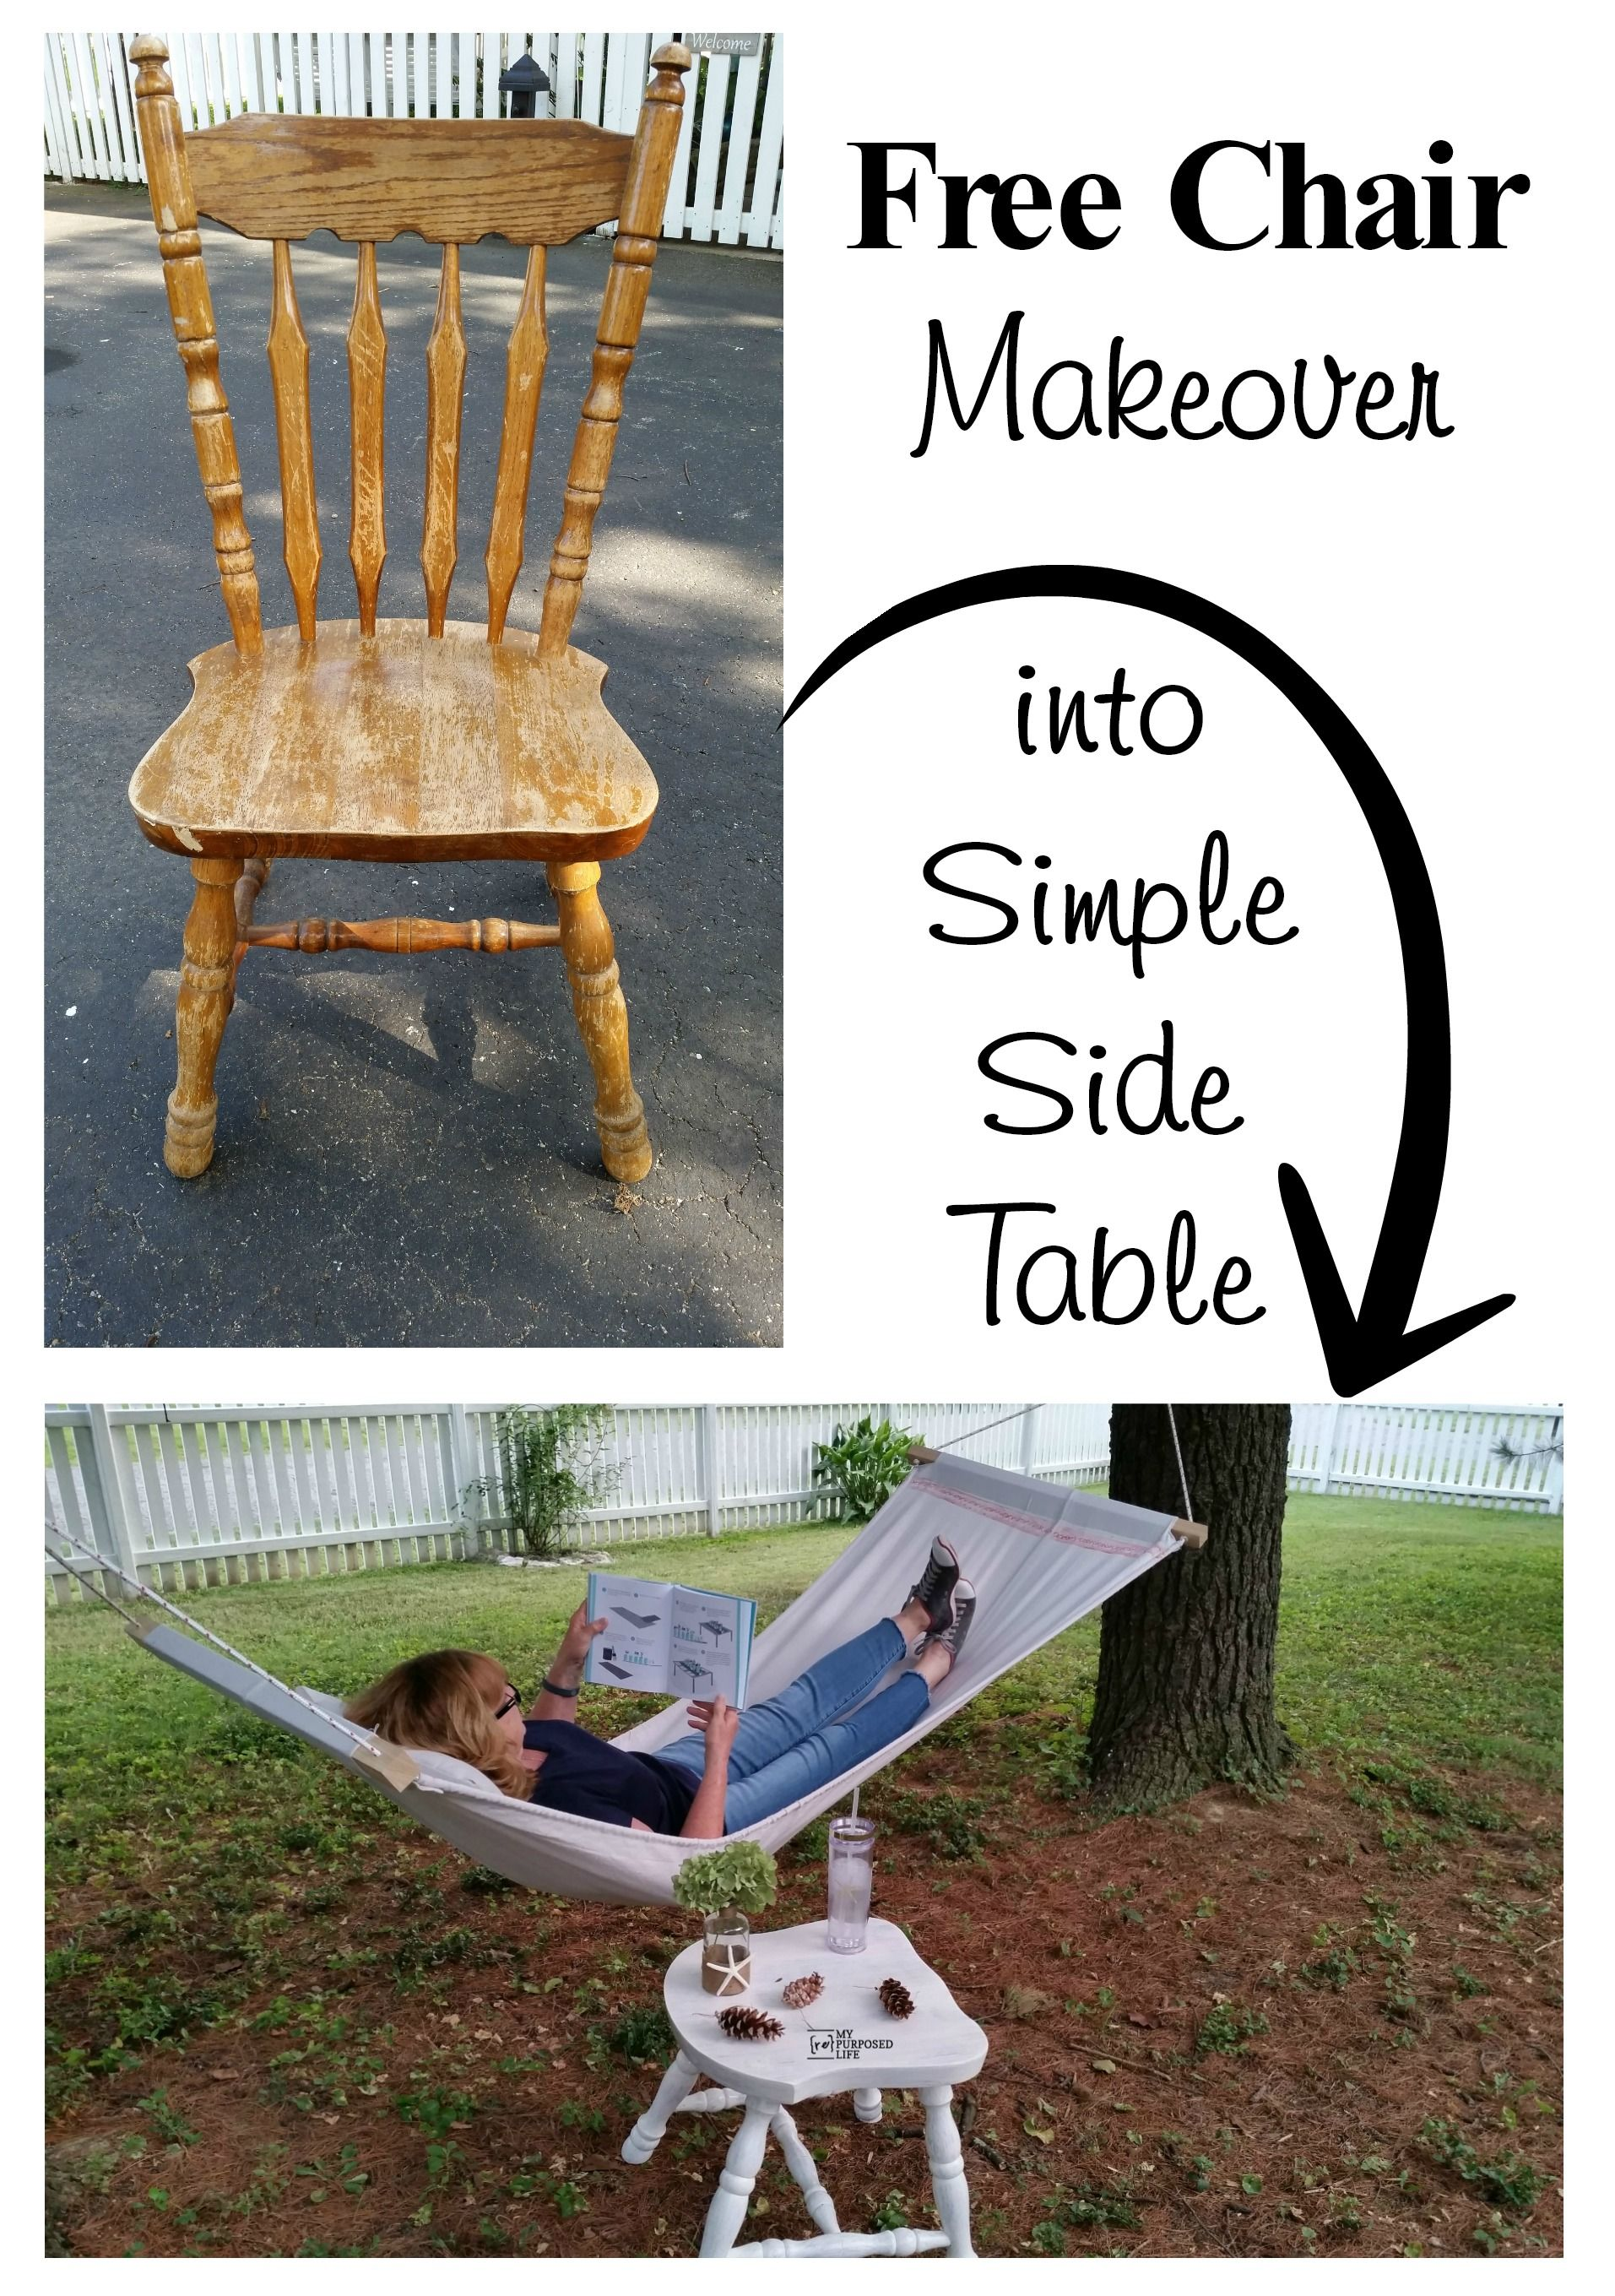 Chair Side Table made from a Free Chair Pinterest